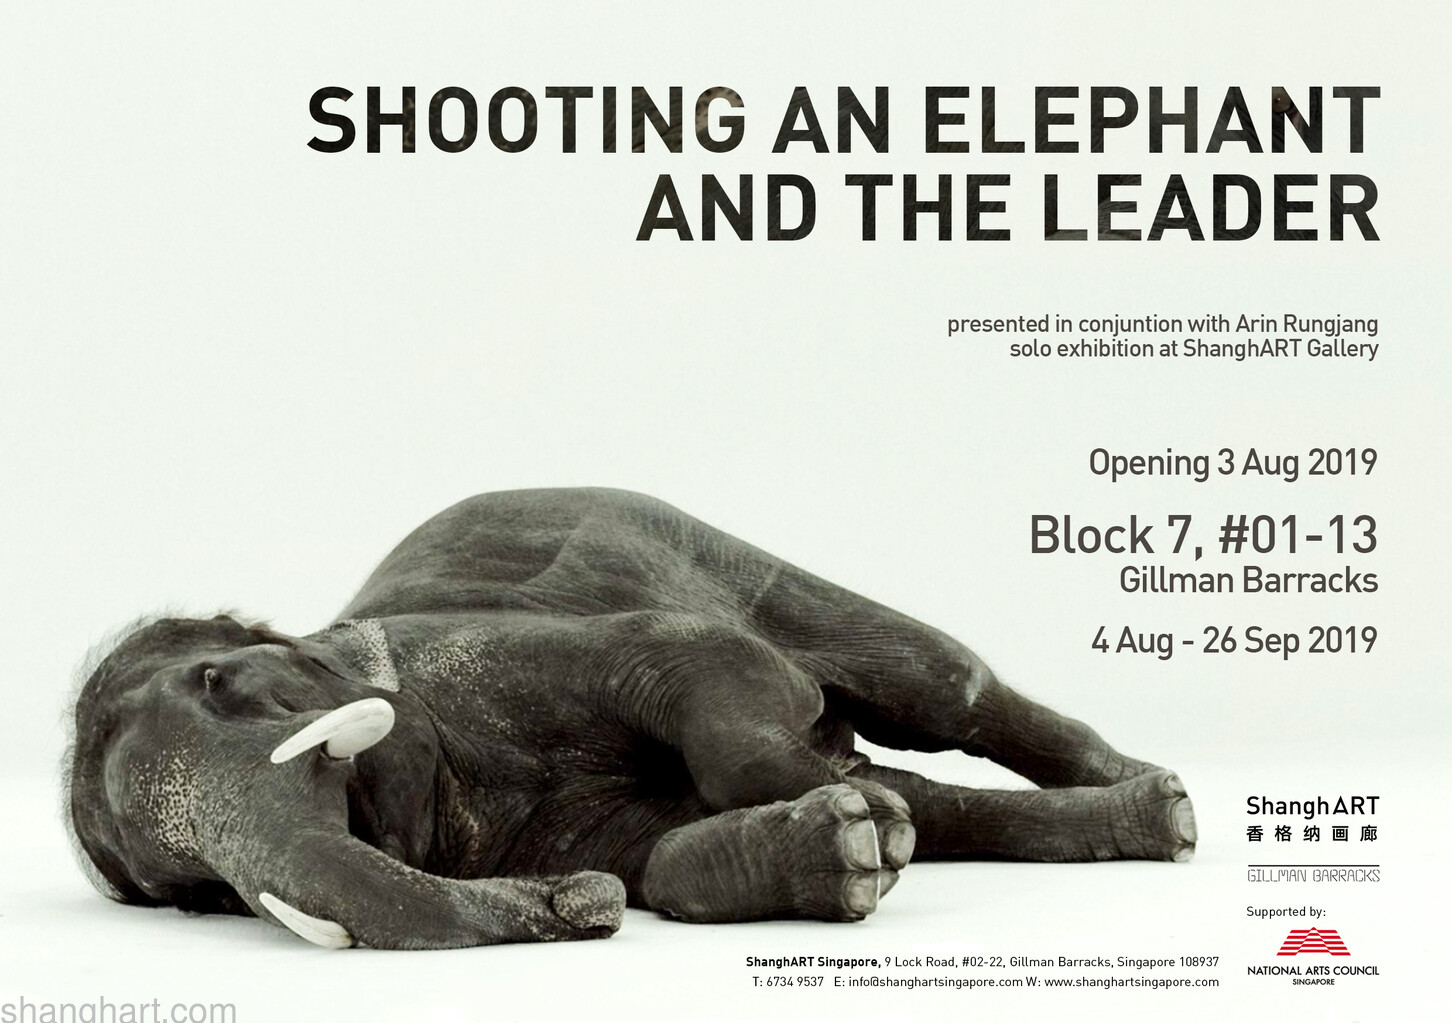 Shooting an Elephant and The Leader